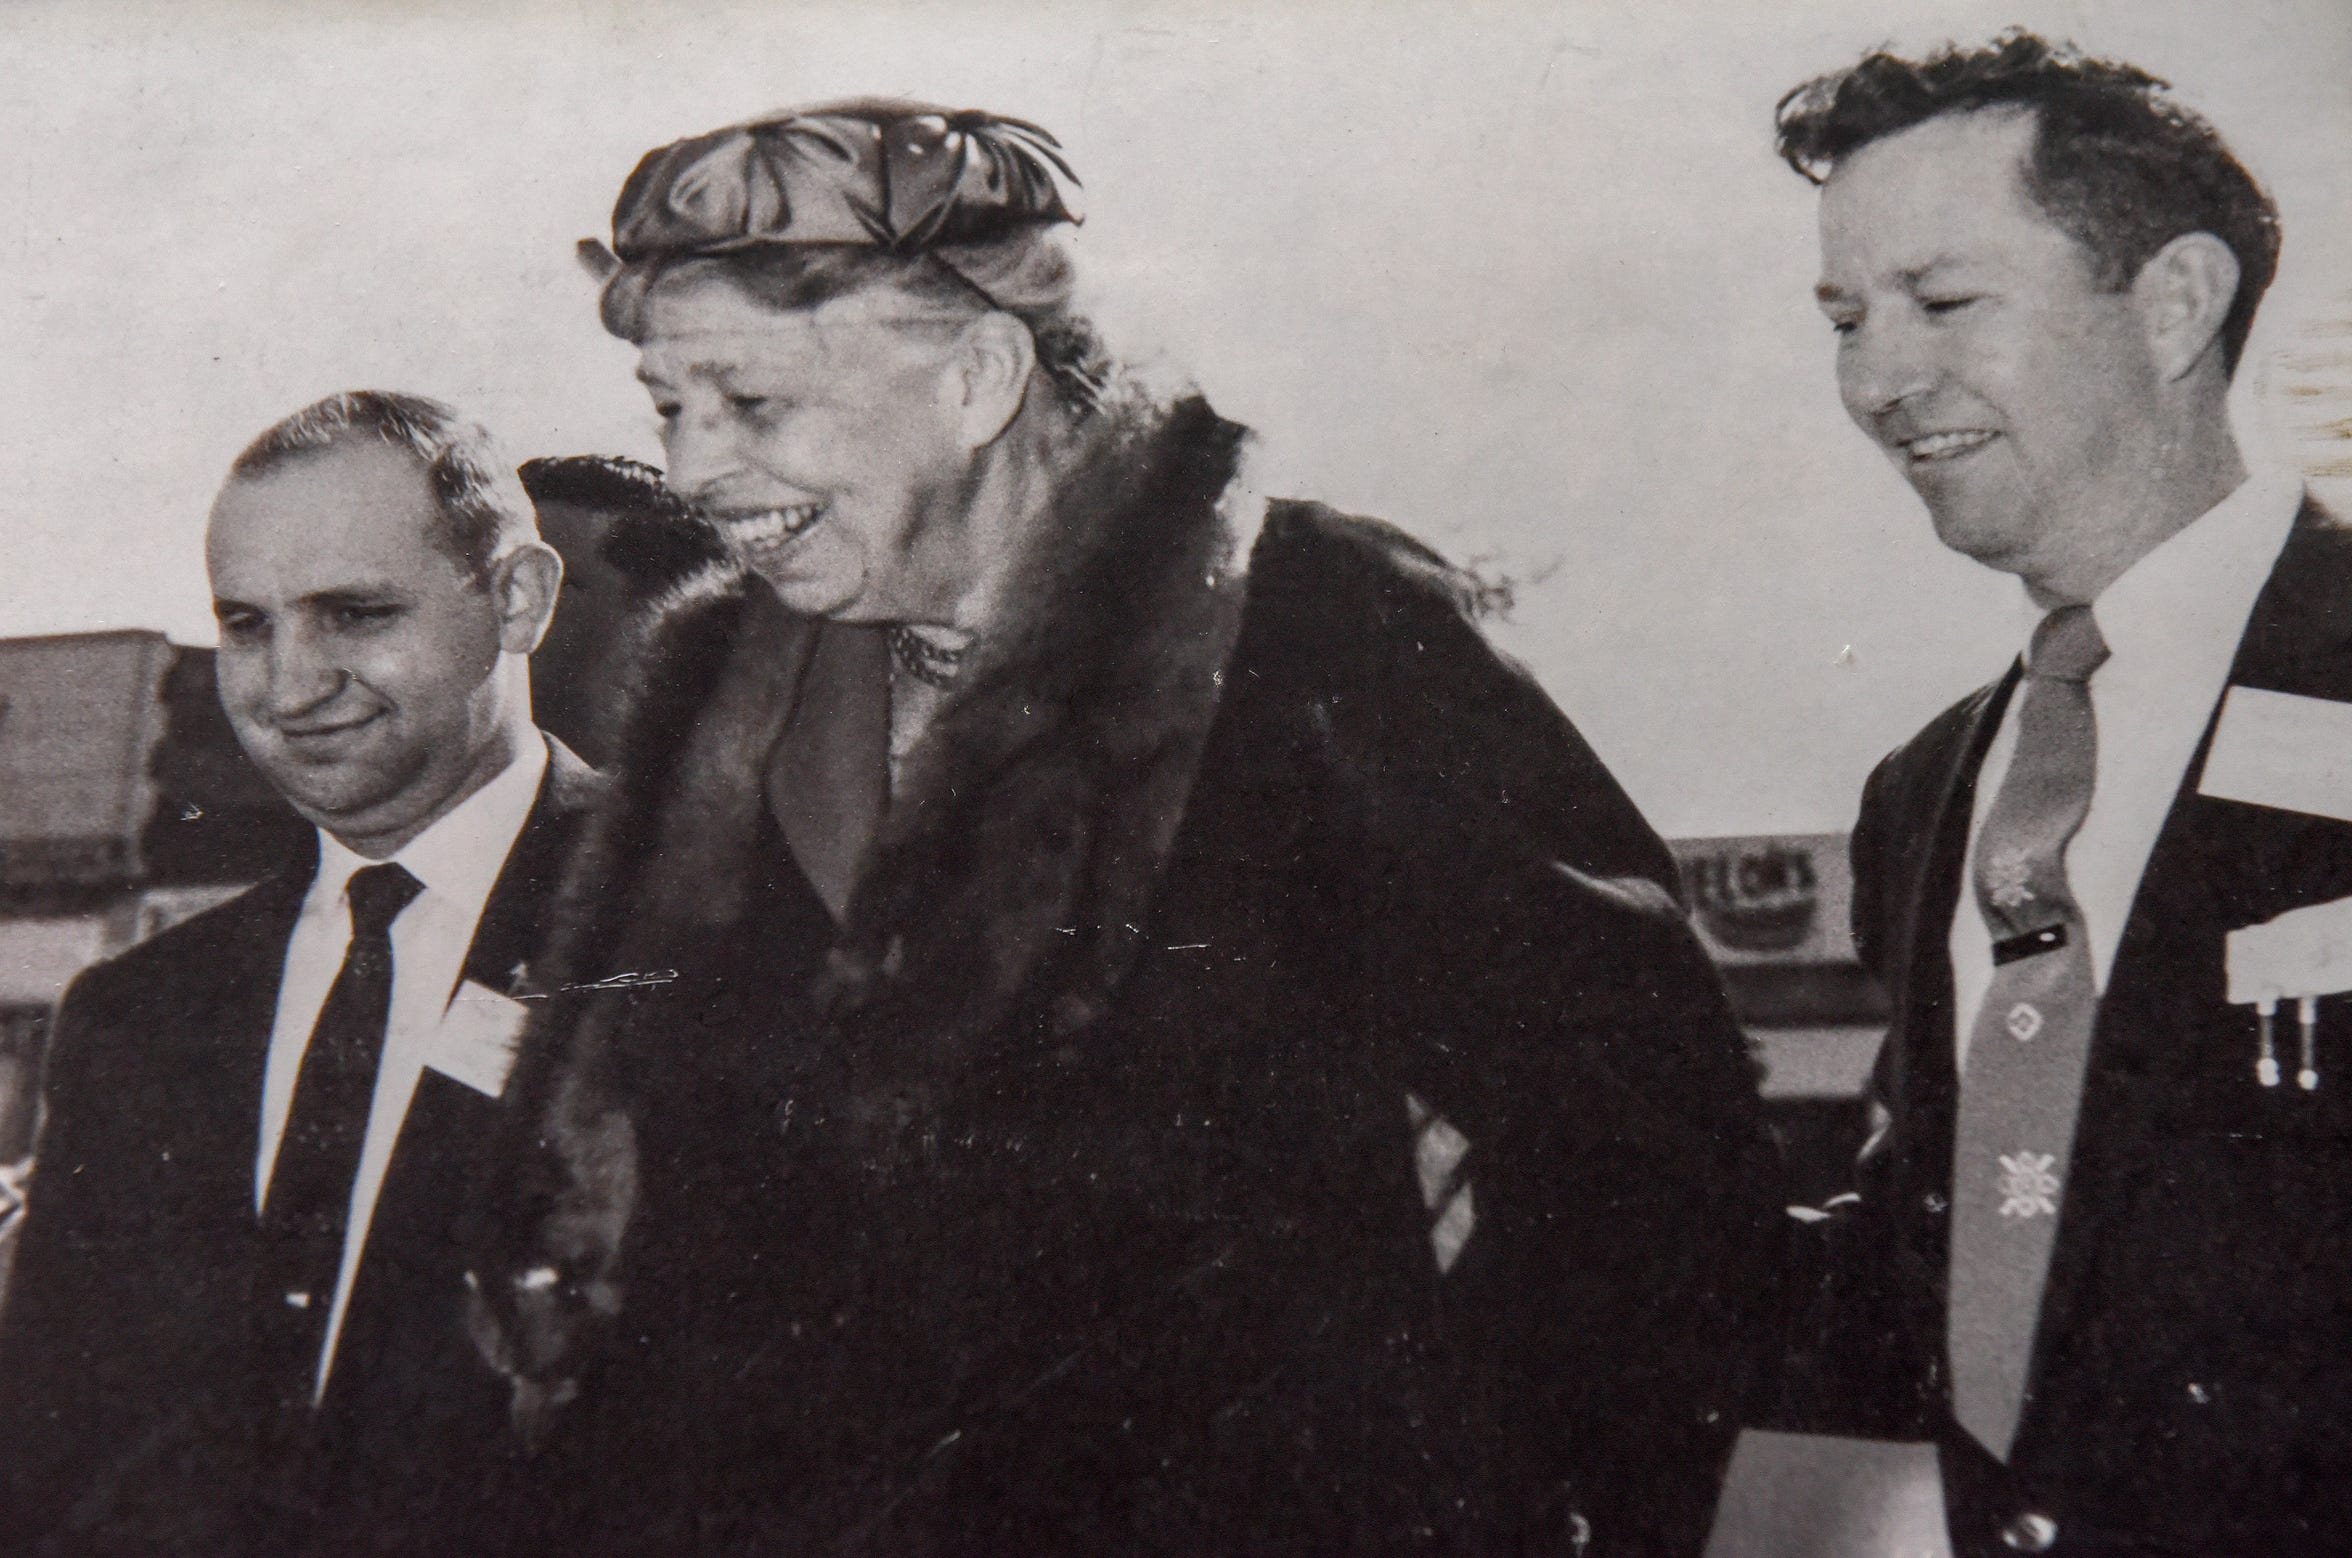 Eleanor Roosevelt visits Local 1299 in River Rouge in 1959. She rededicated the building, named for her late husband Franklin D. Roosevelt when it opened in 1946.